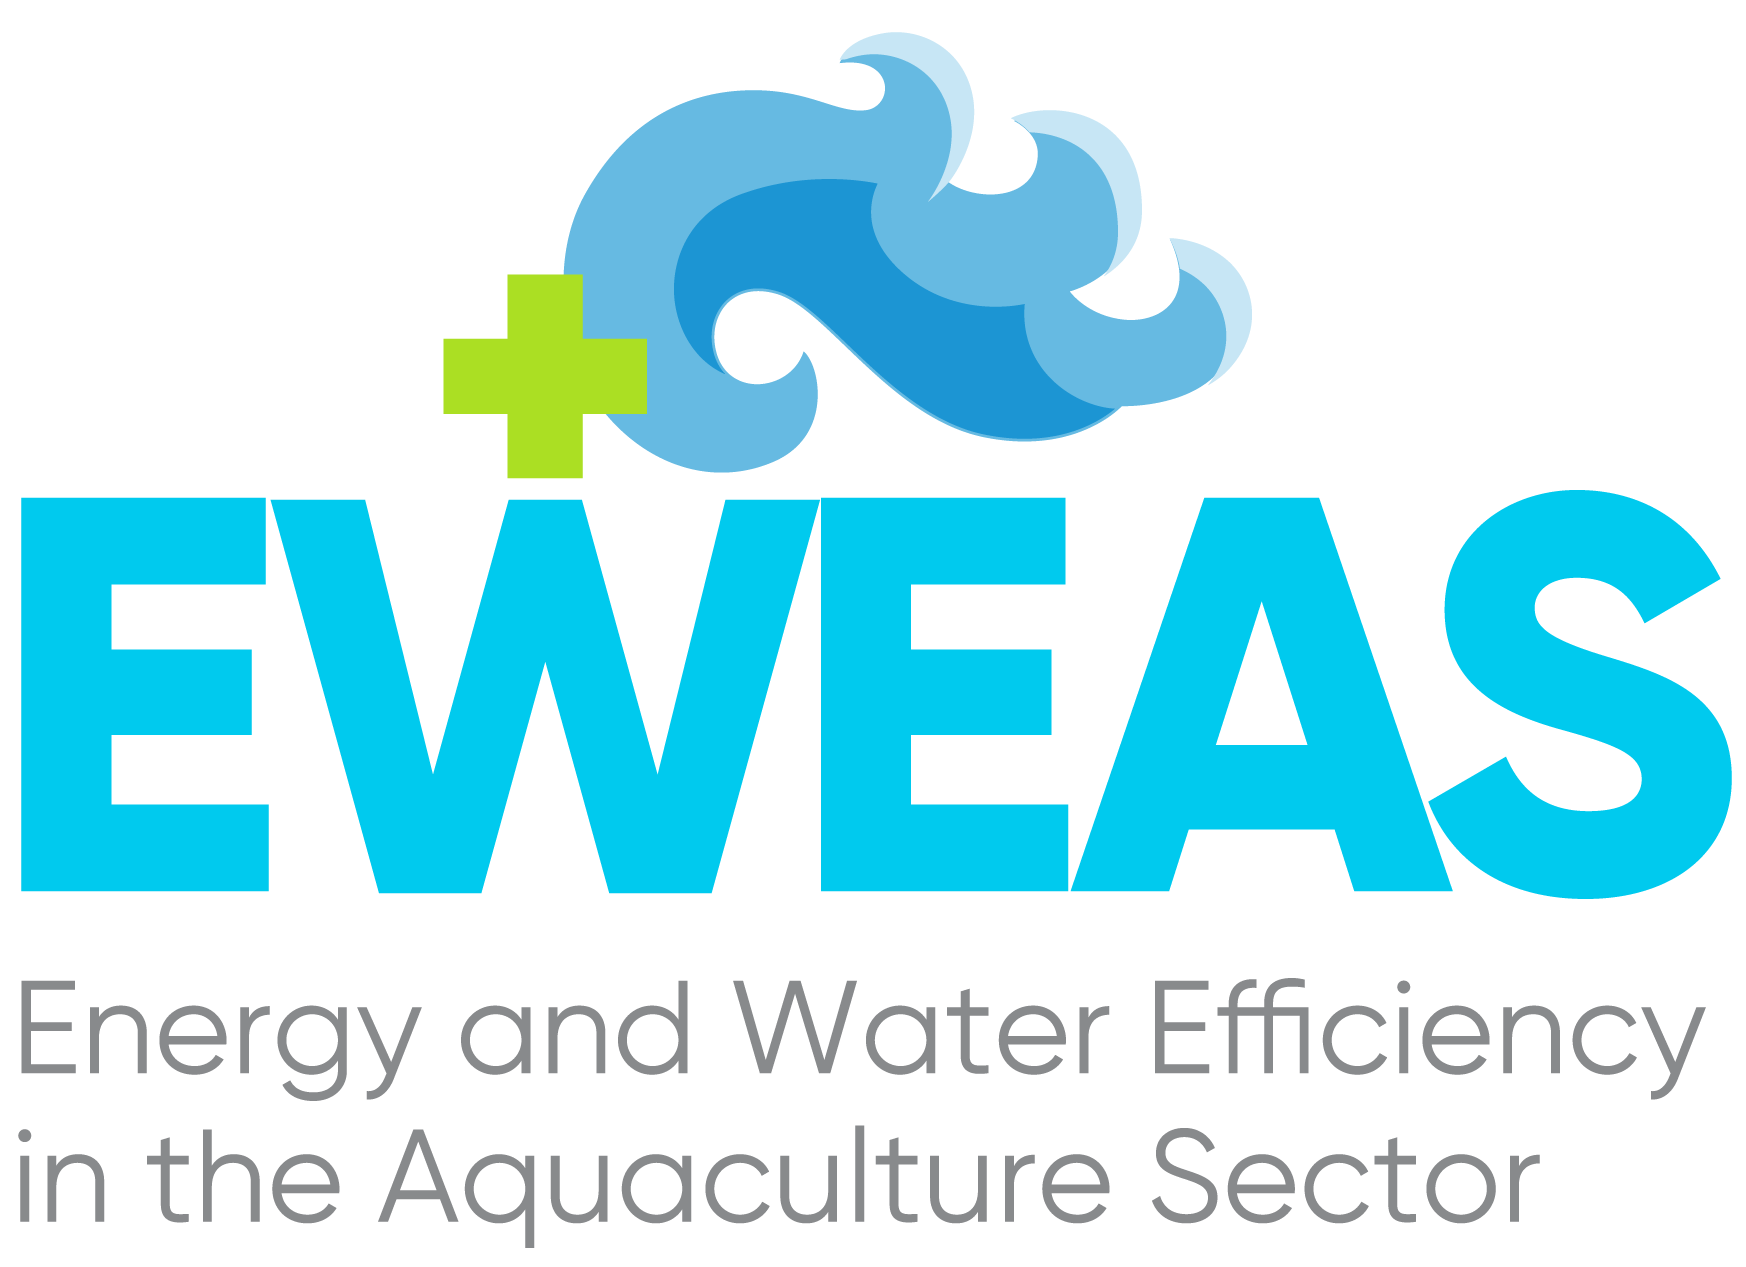 EWEAS - Newly launched project aims to increase water and energy efficiency in aquaculture farms through online training programme